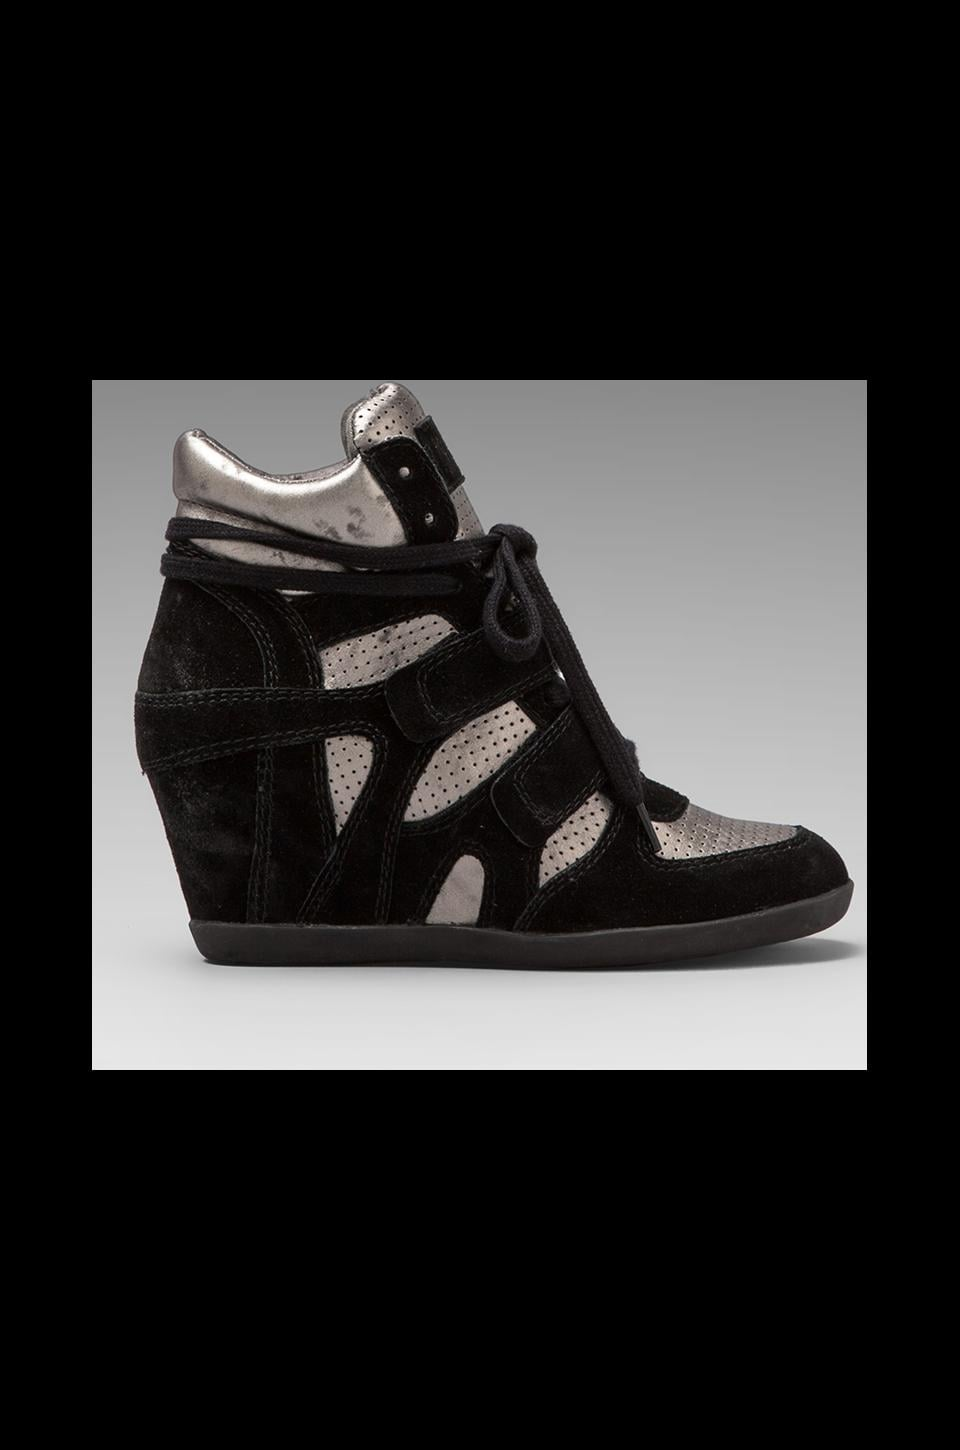 Ash Bea Wedge Sneaker in Black/Piombo